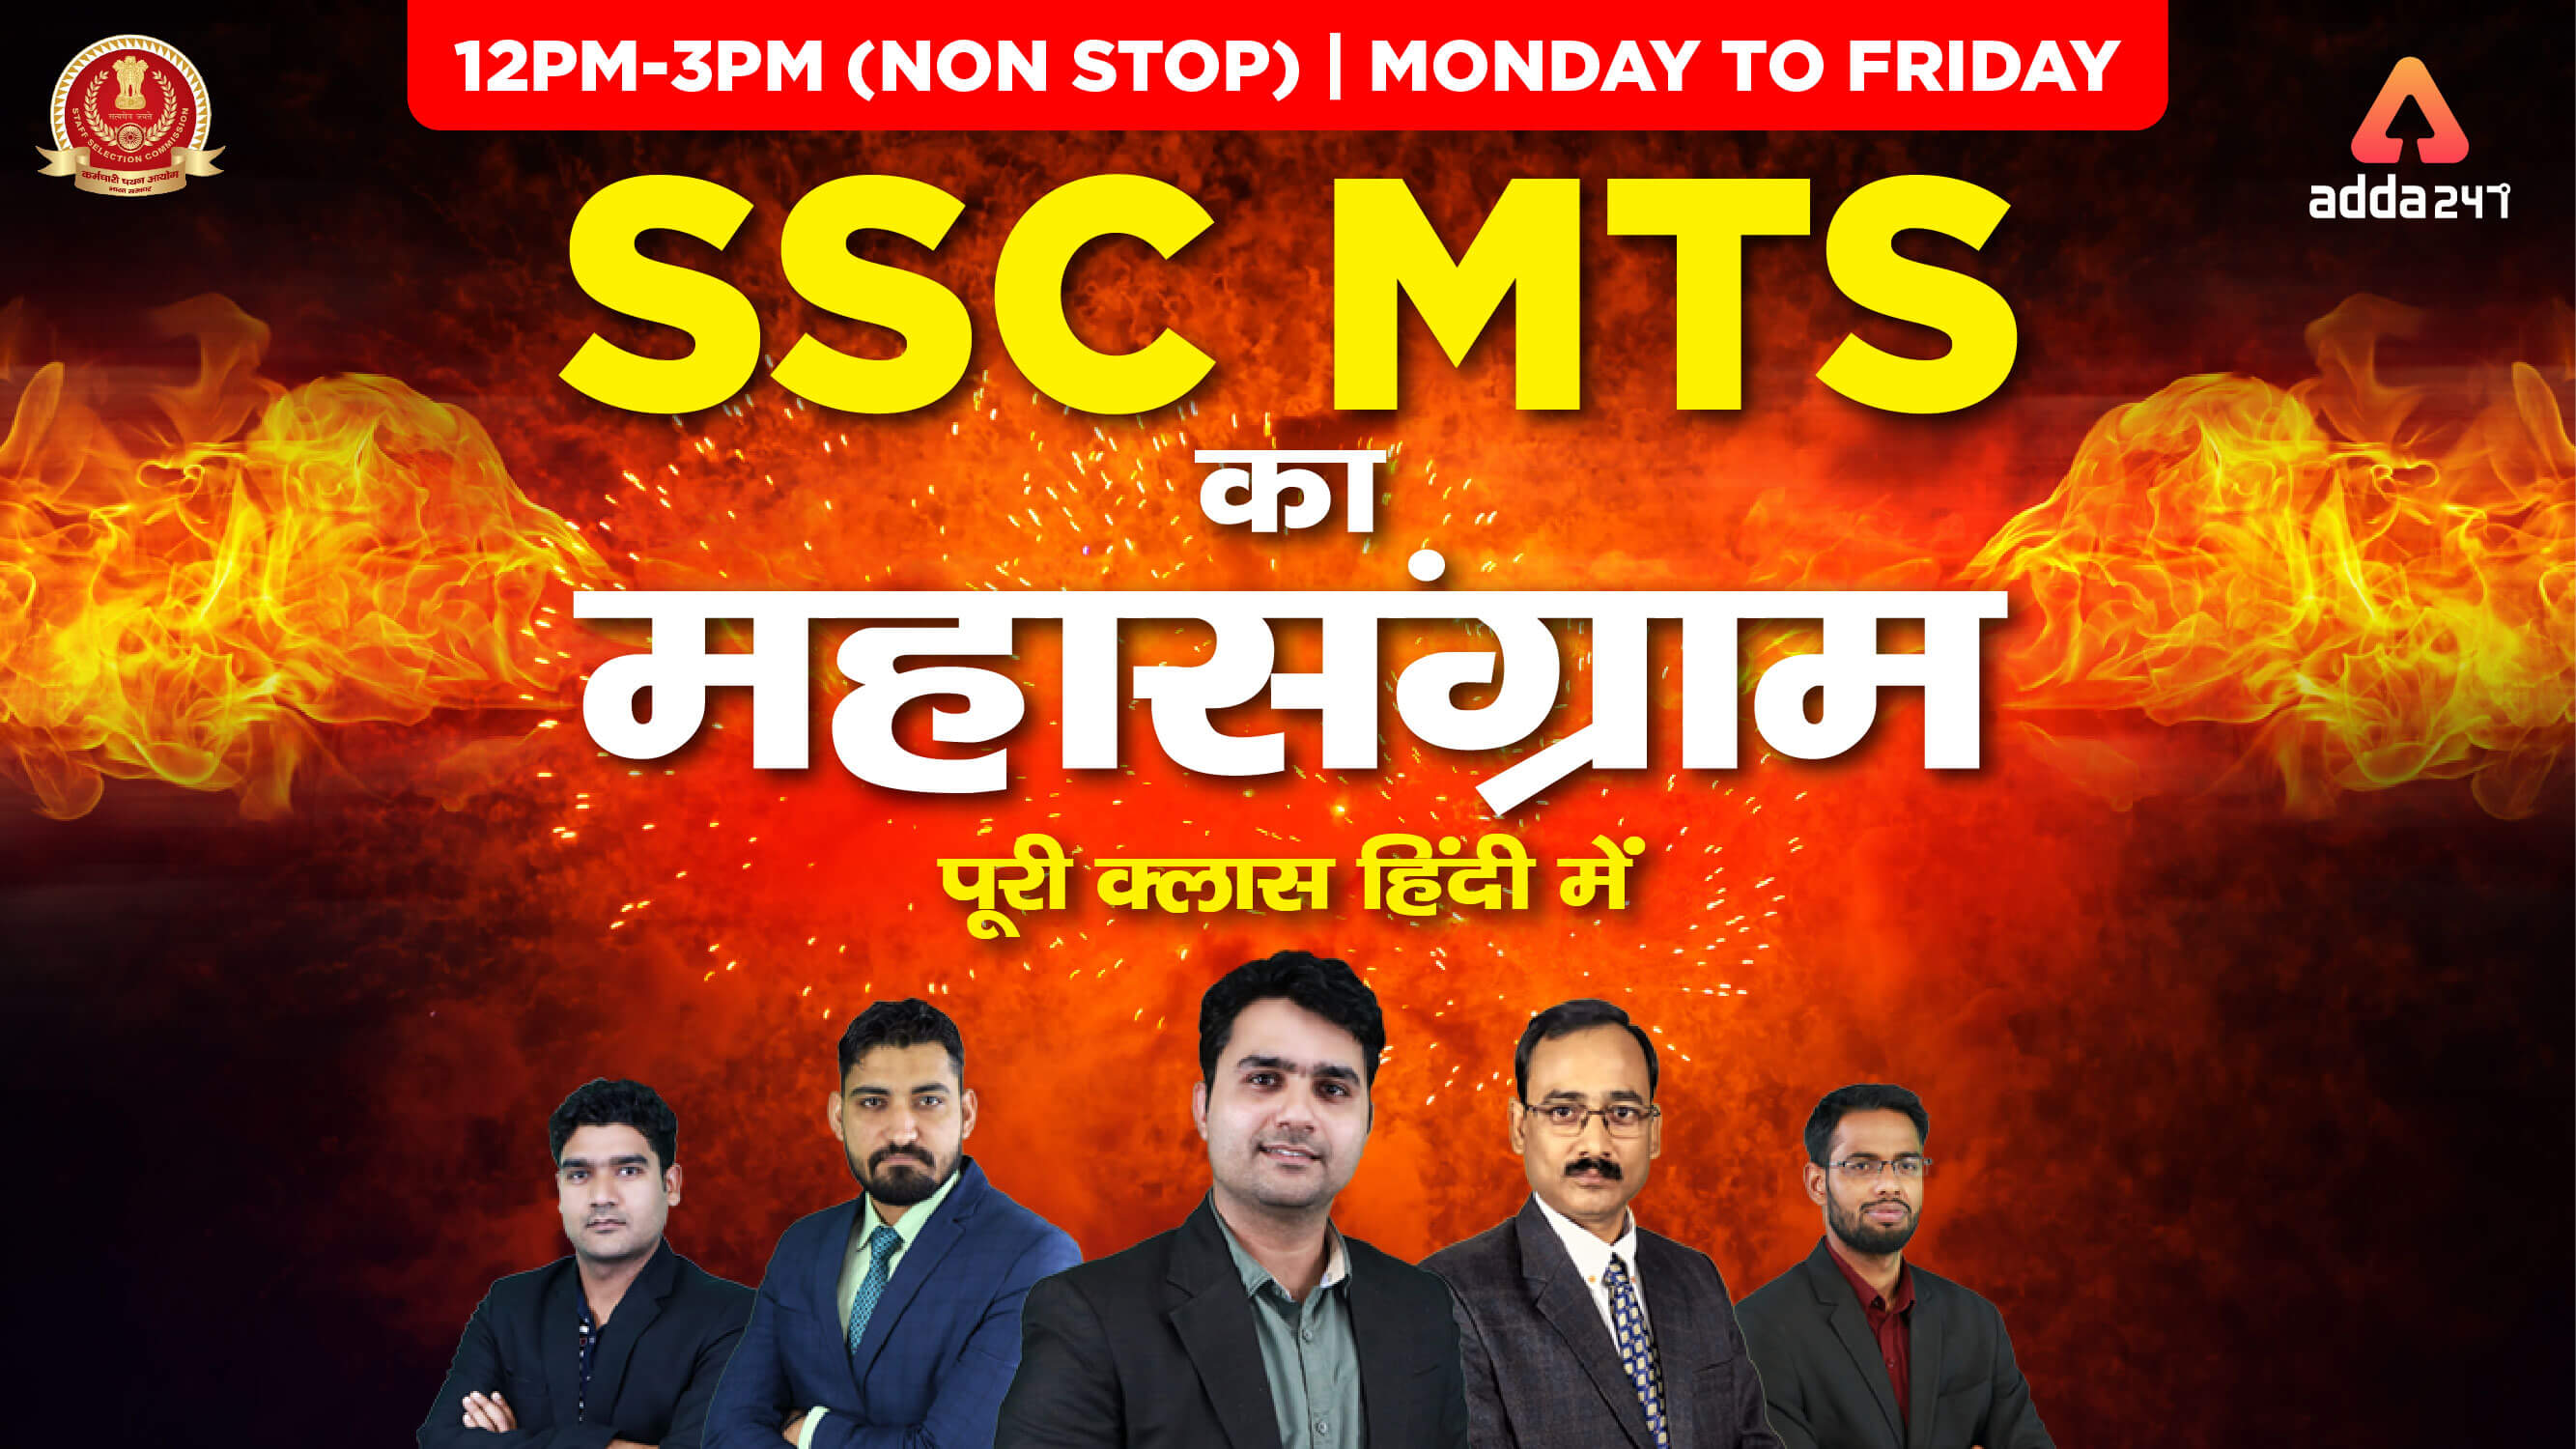 SSC MTS Free Live Class On Previous Years Papers ...